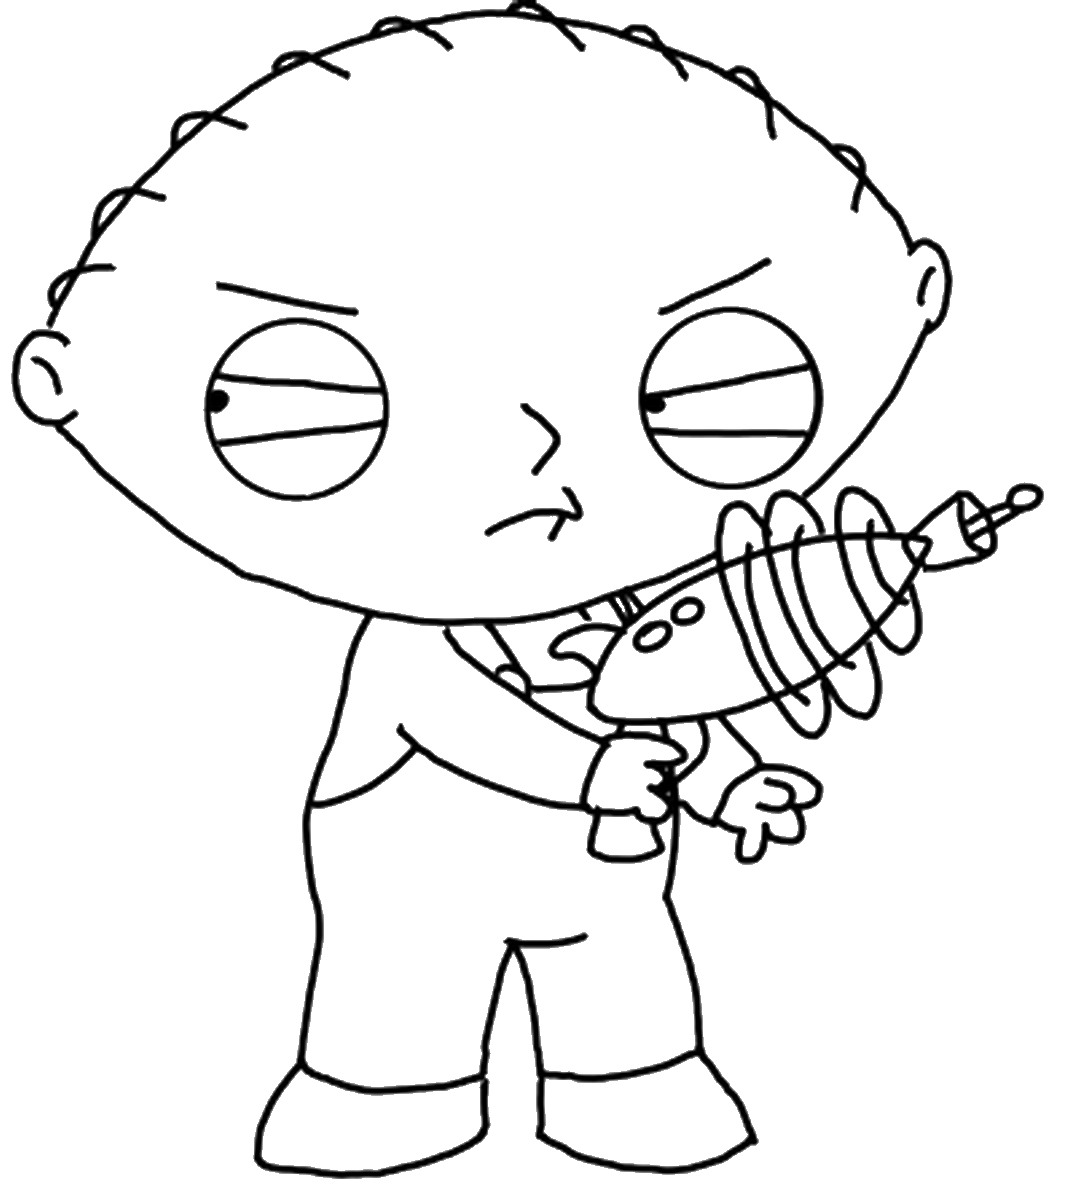 1074x1200 Coloring Pages Stewie Griffin Crying Spongebob Coloring Pages